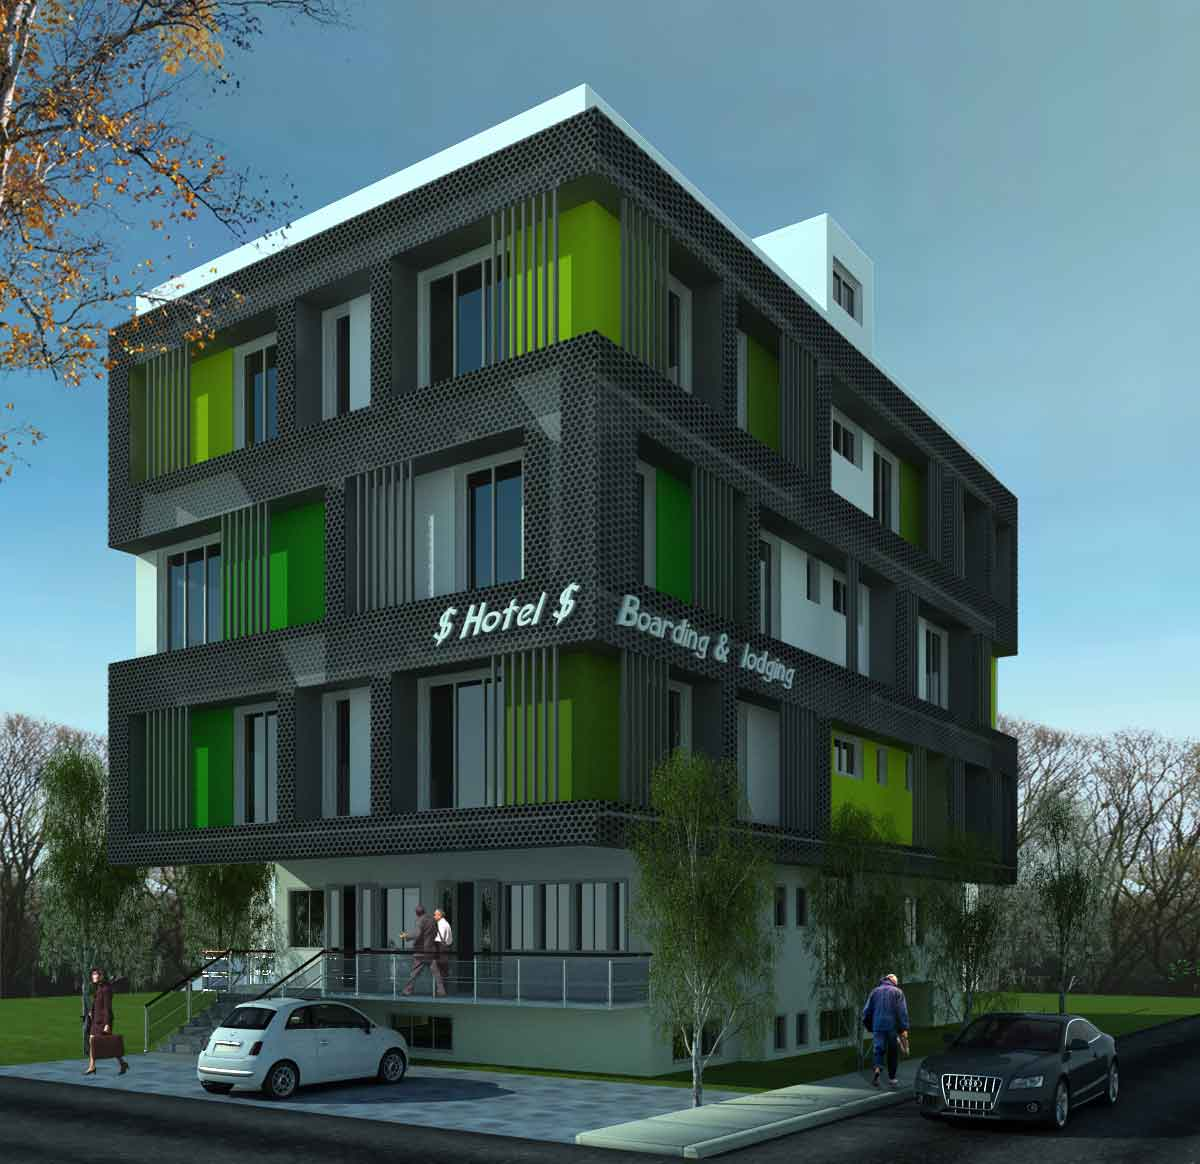 Commercial architecture design hotel 01 thanjavur best for Design hotel chennai contact number